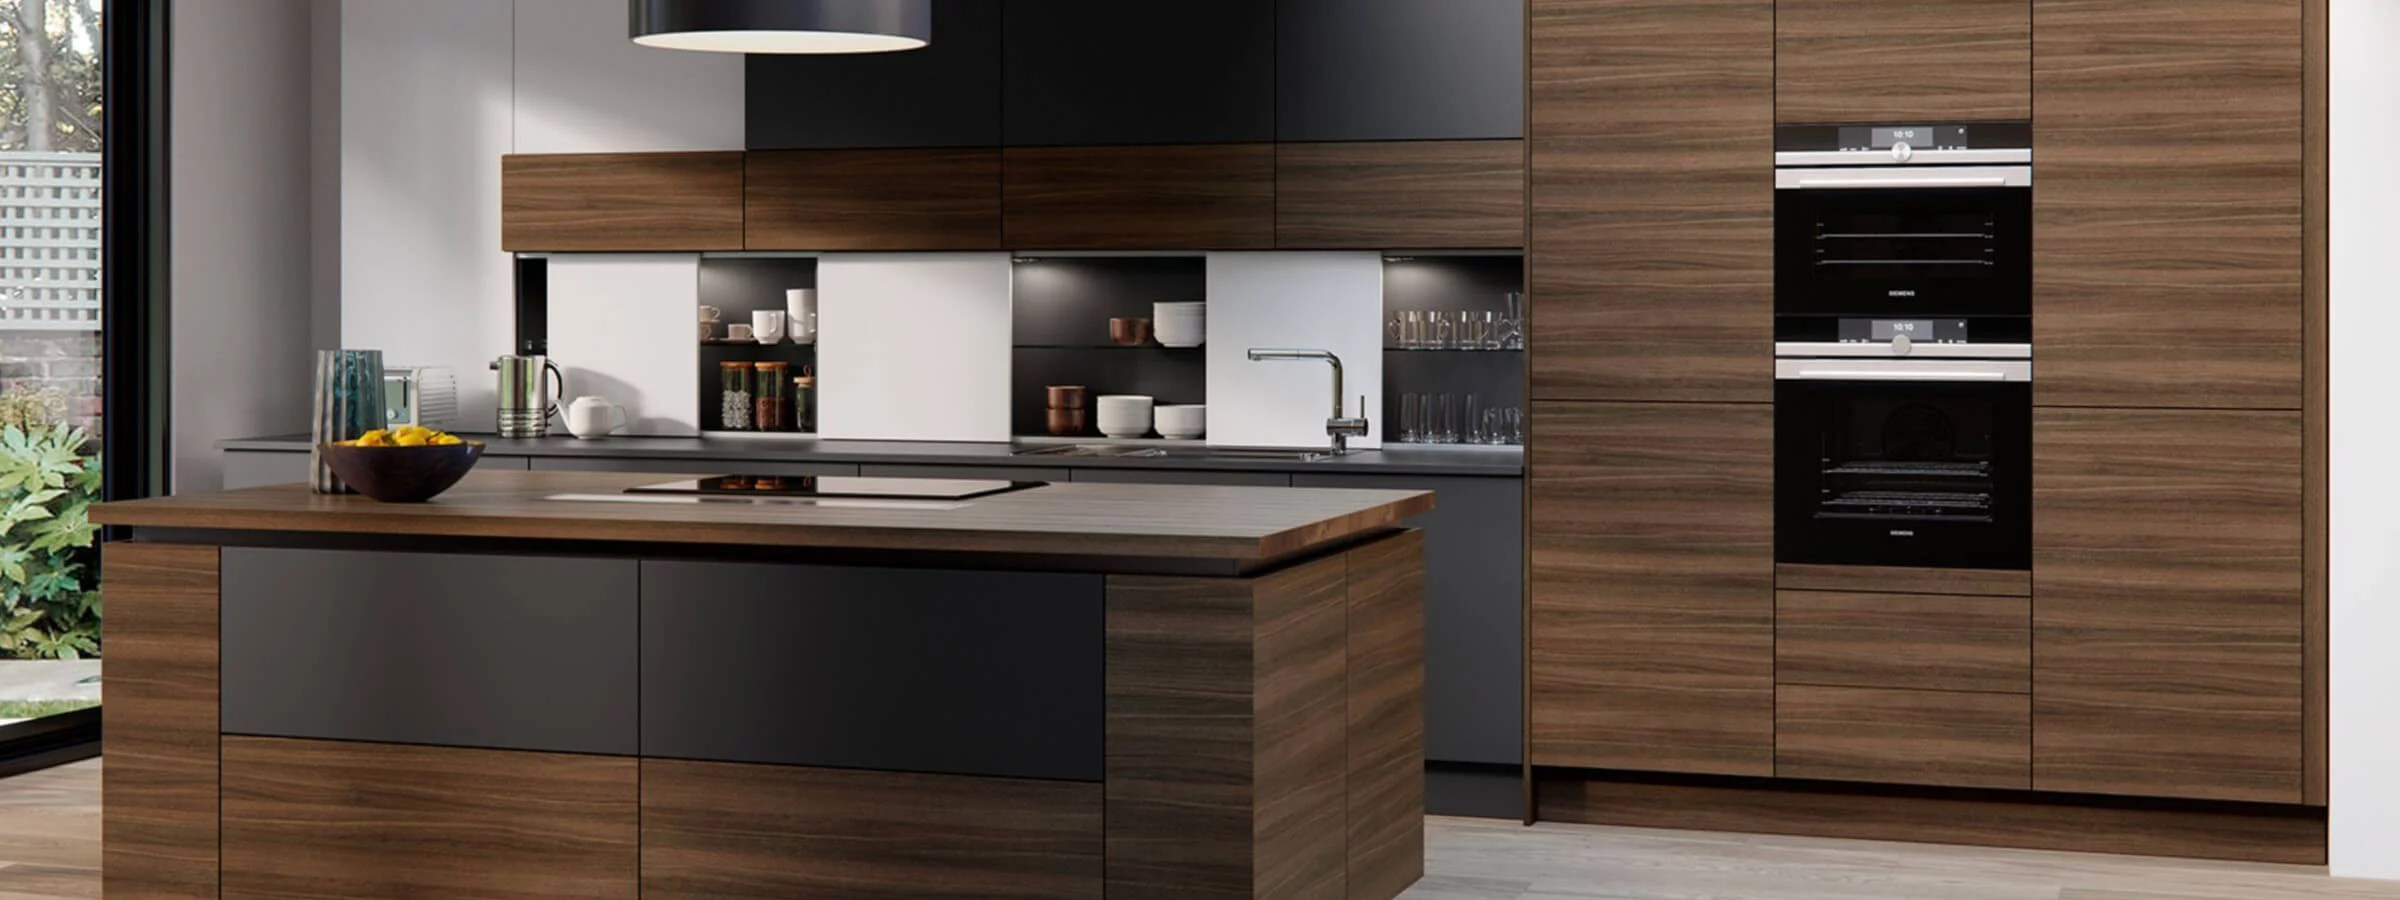 Kitchen Design App Free Download Fitted Kitchen Service